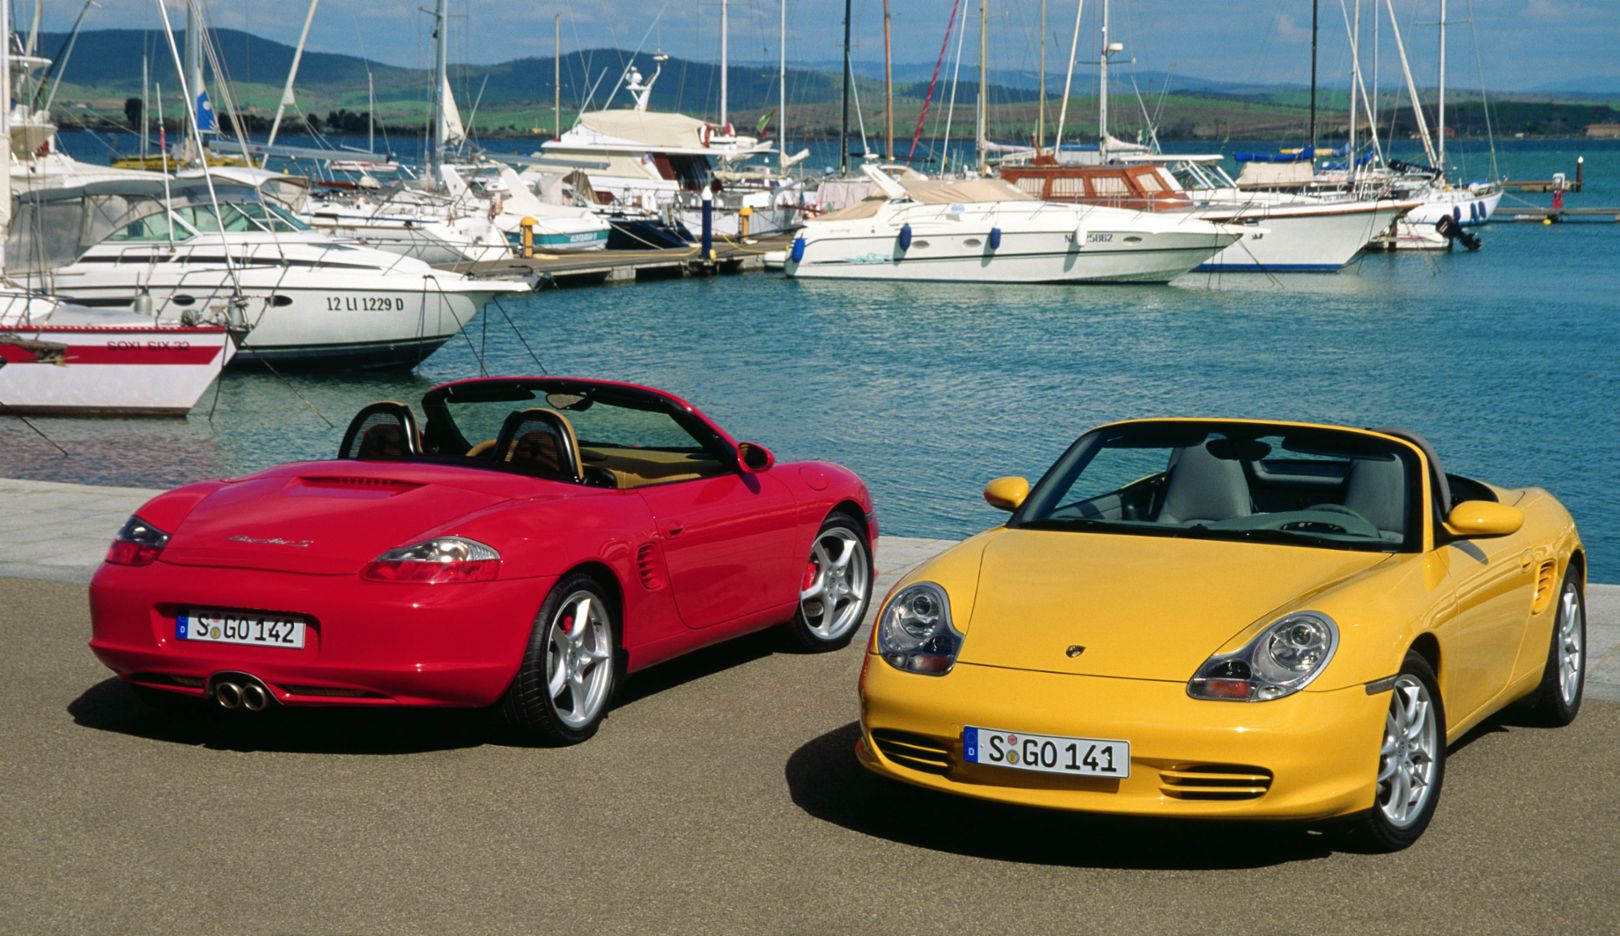 986 generation: model years 1997–2005. A total of 164,874 units of the first Boxster generation – 986 – were built.